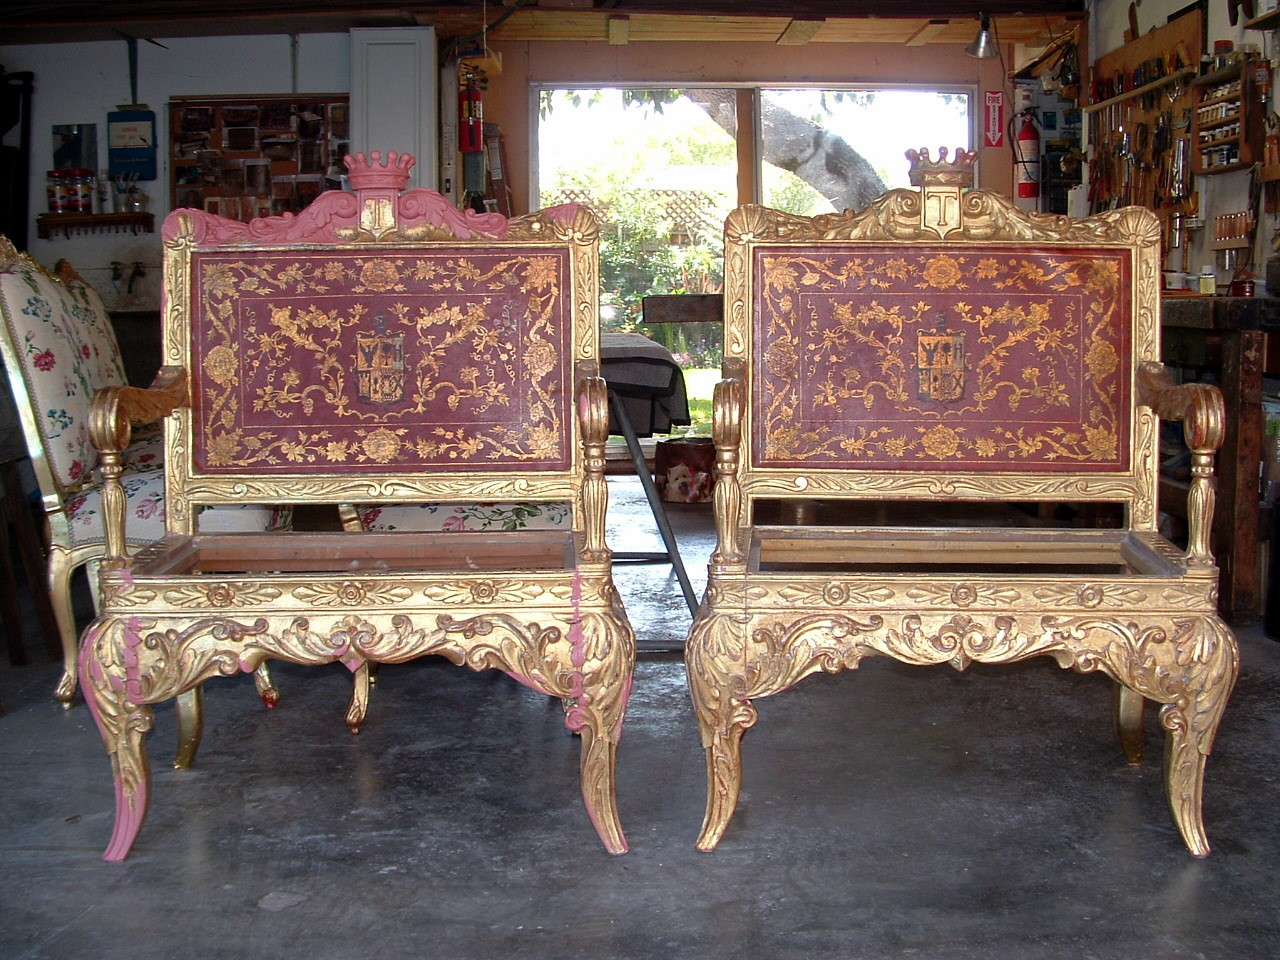 Furniture Appraisal Los Angeles Grey Furniture Stain Home Design Antique Furniture Appraisal